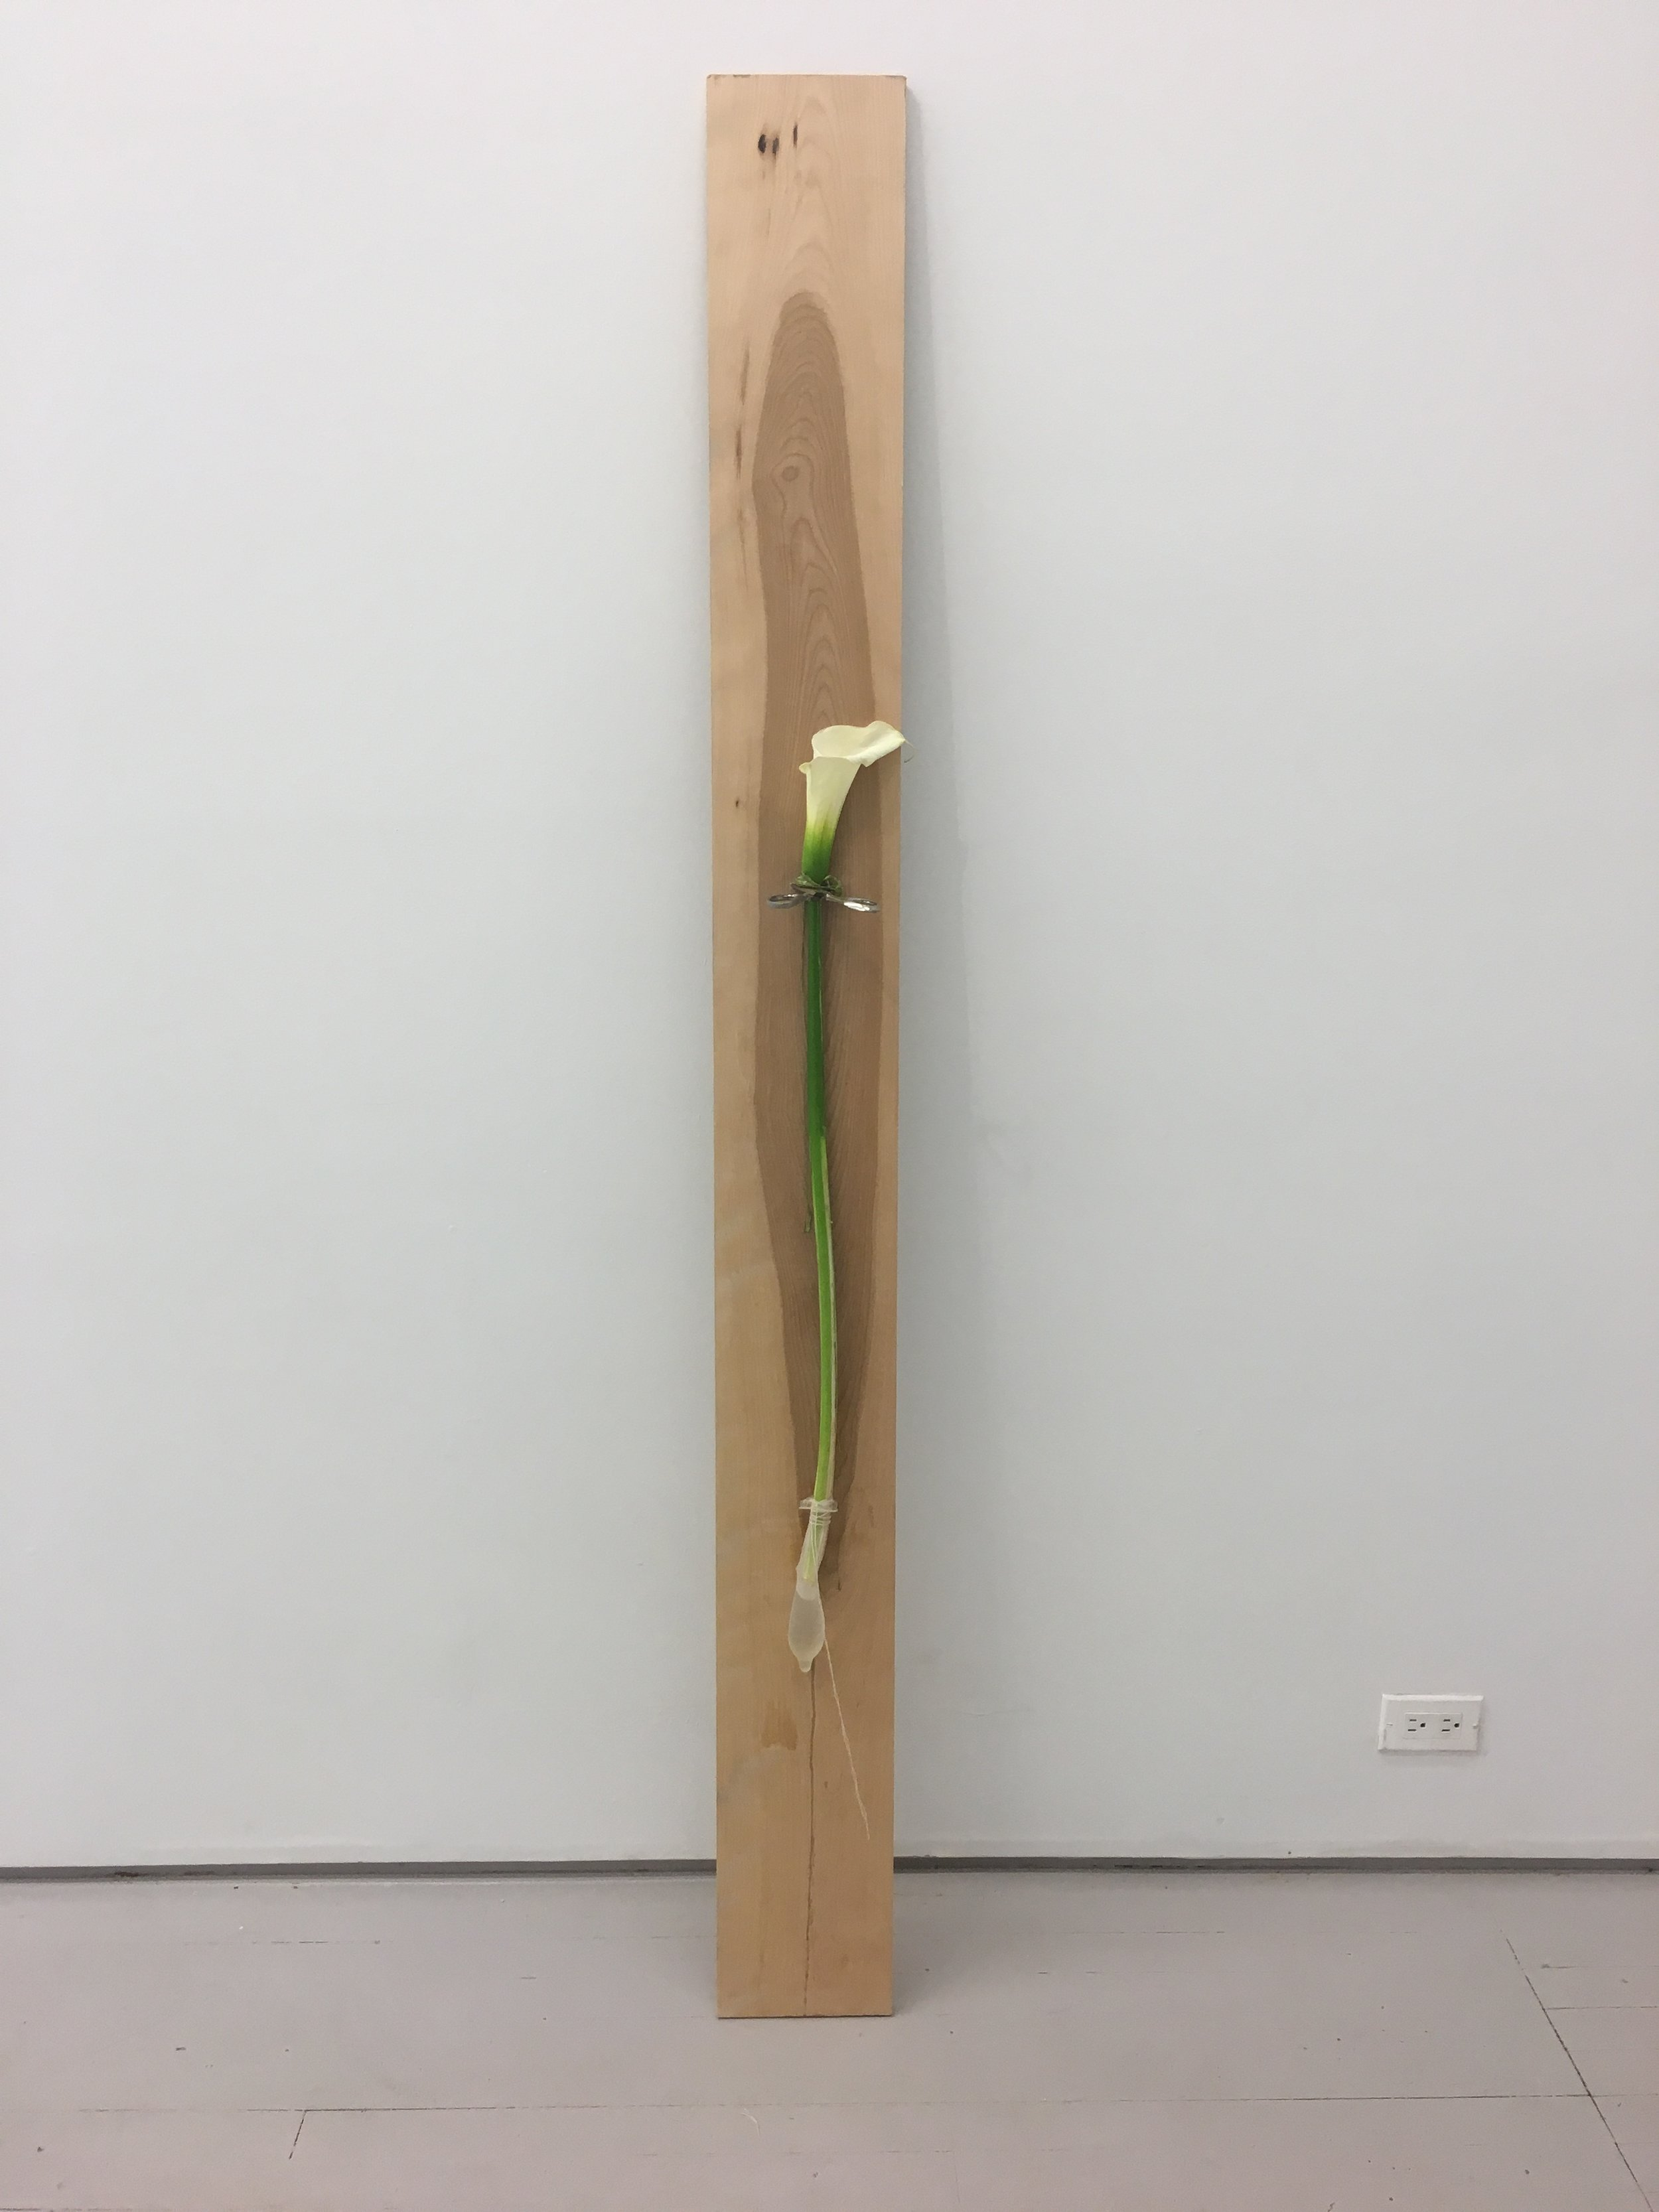 Camille Schefter. Loving the Scorpion, 2018. Birch plank, scissors, calla lily, condom, string